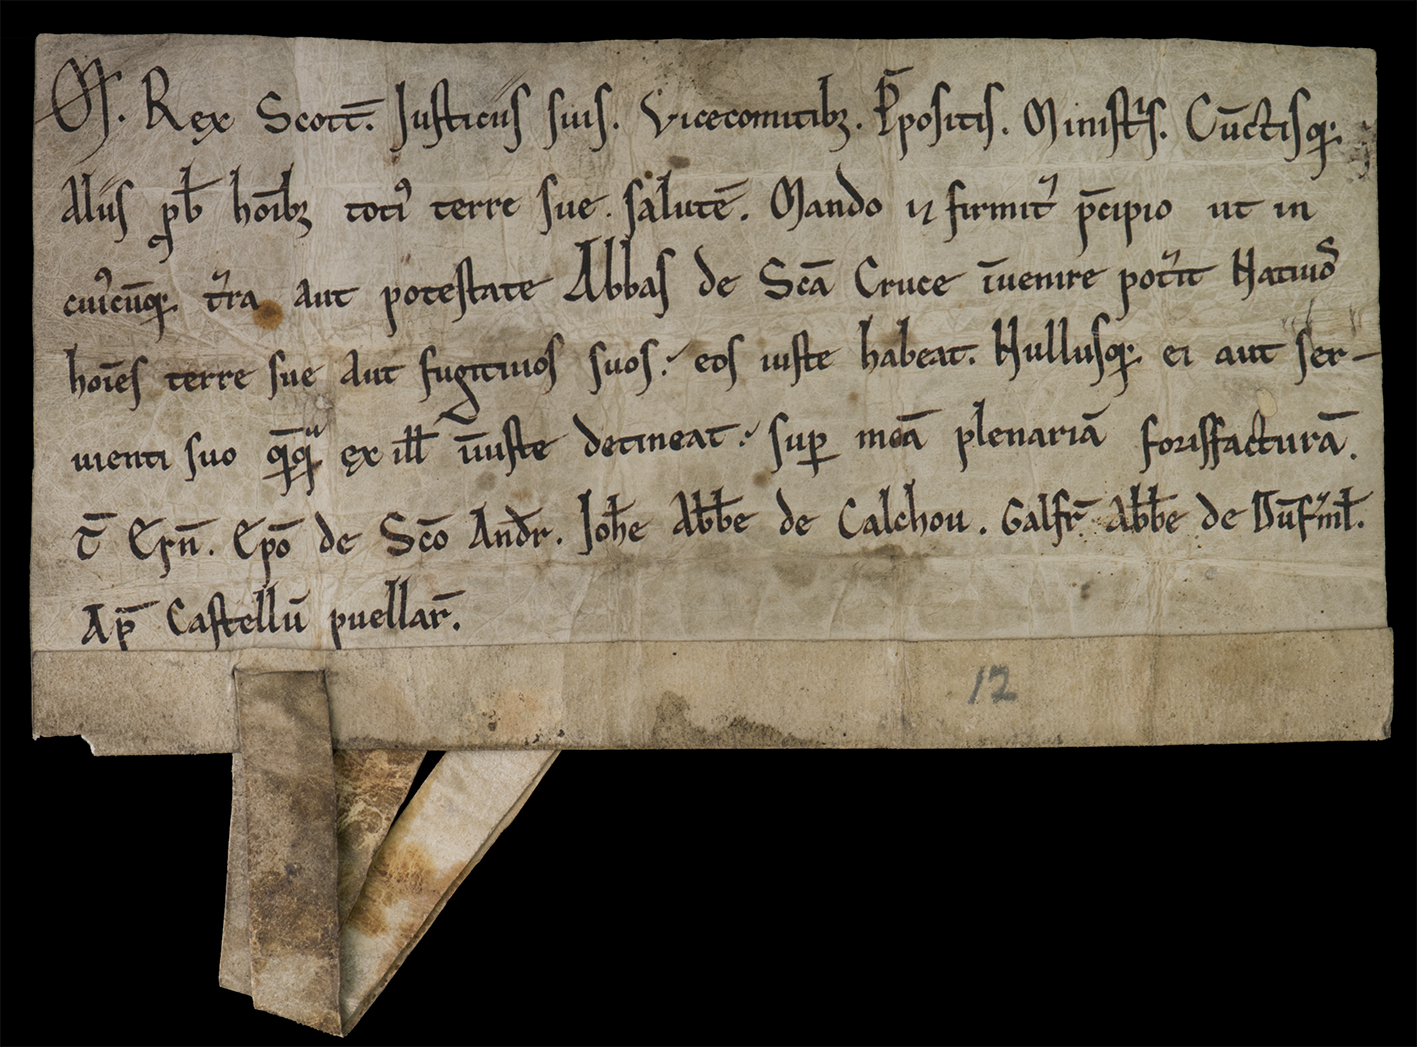 Charter by King Maclcolm IV, National Records of Scotland (GD45/13/224)